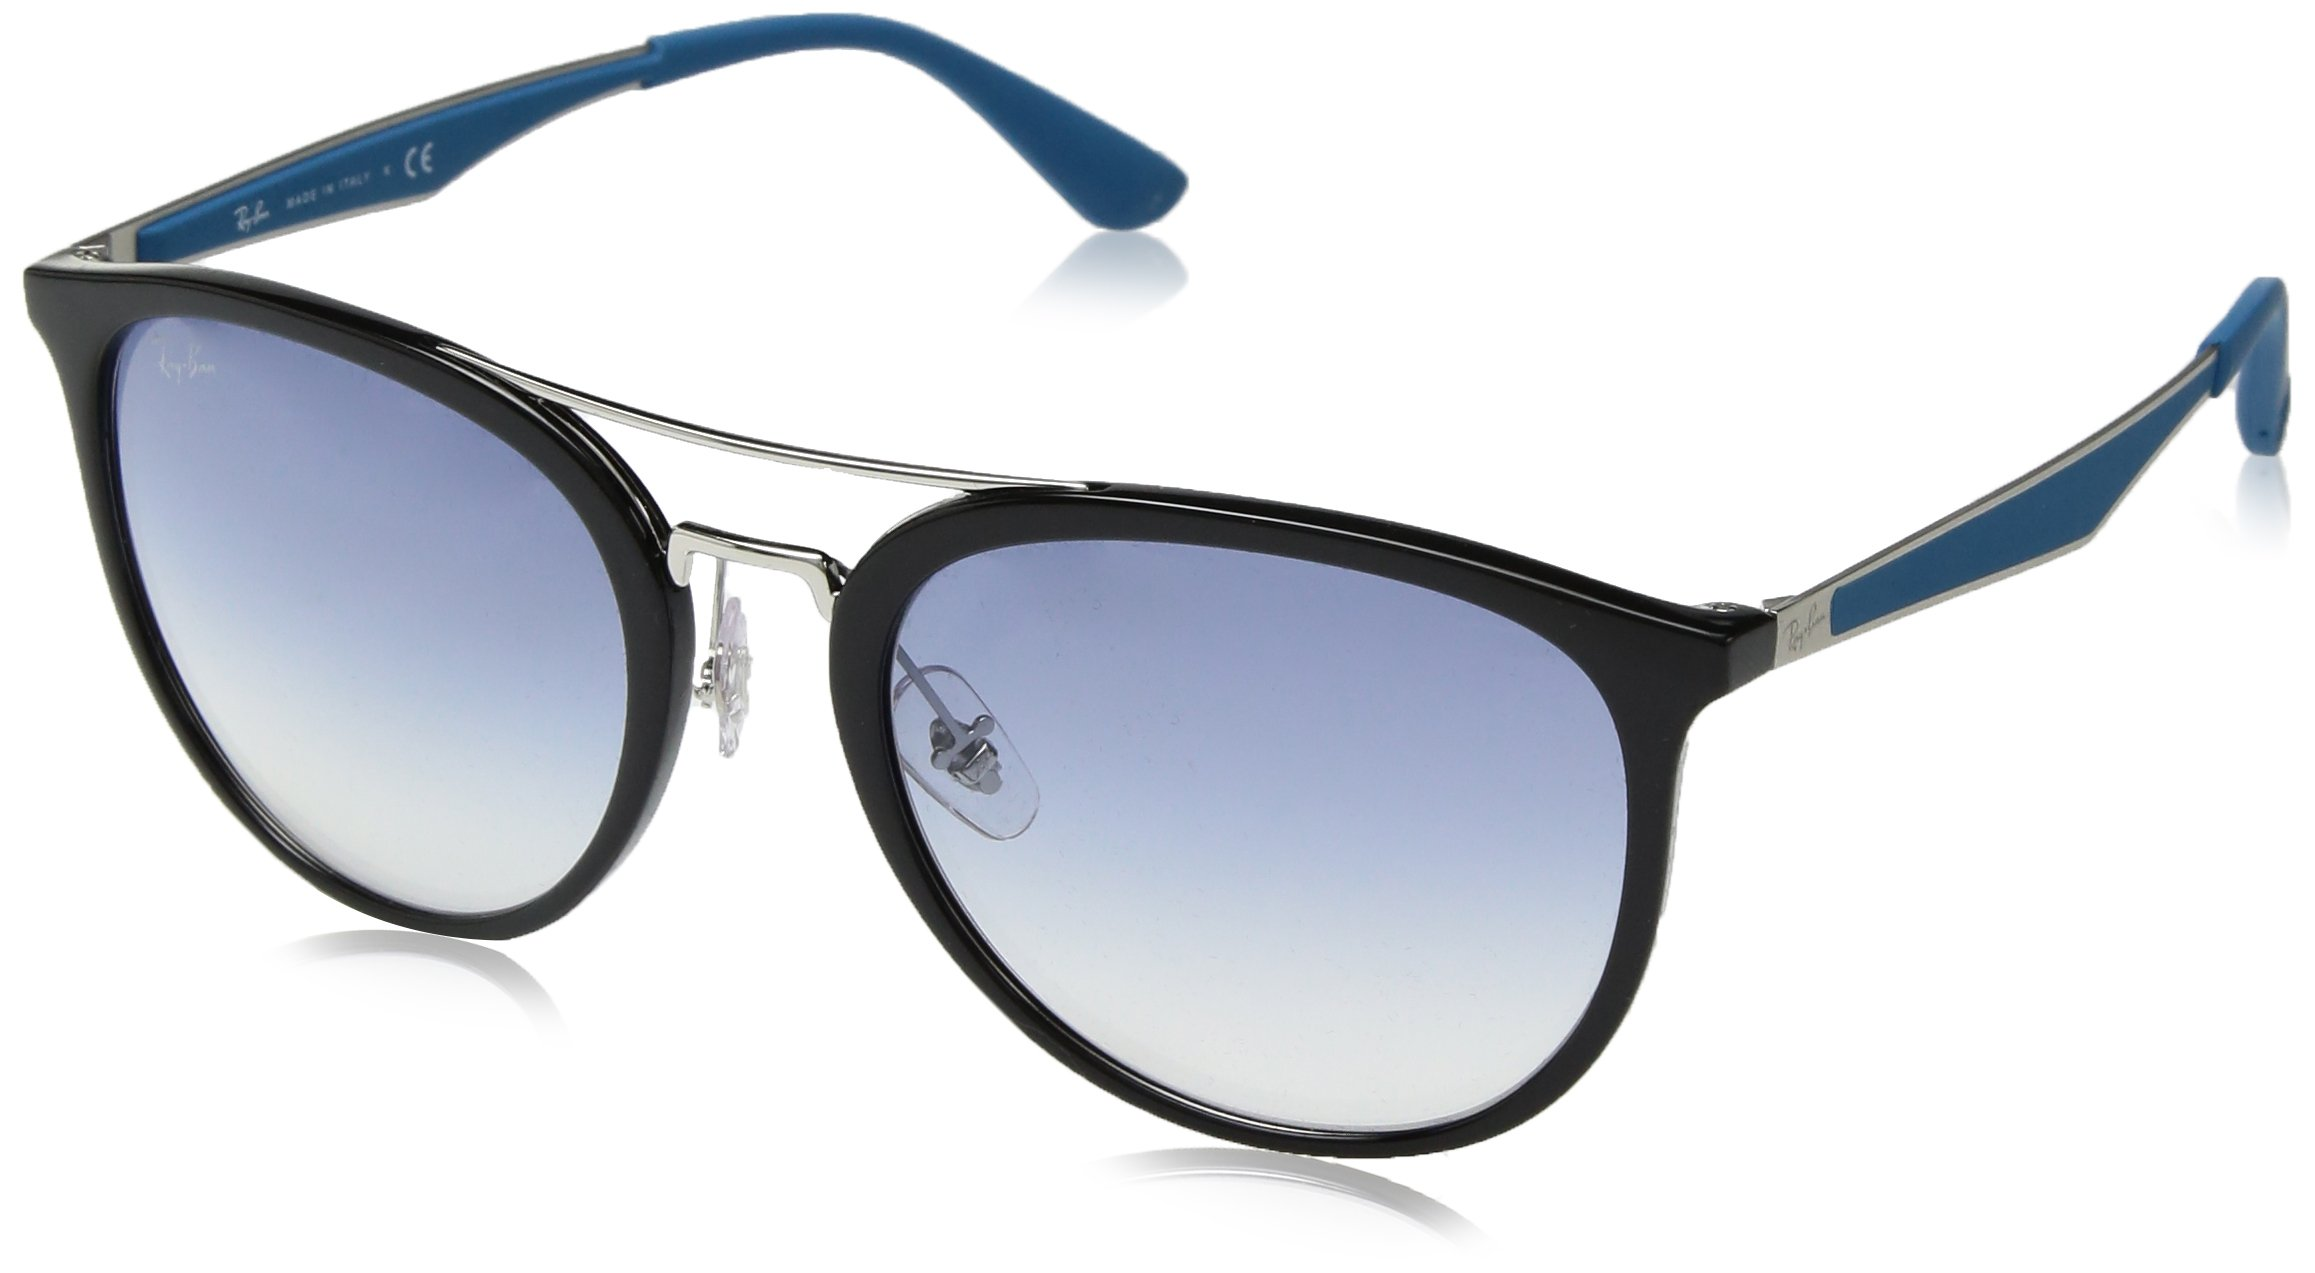 Ray-Ban RB4285 Square Sunglasses, Black/Clear Gradient Light Blue, 55 mm